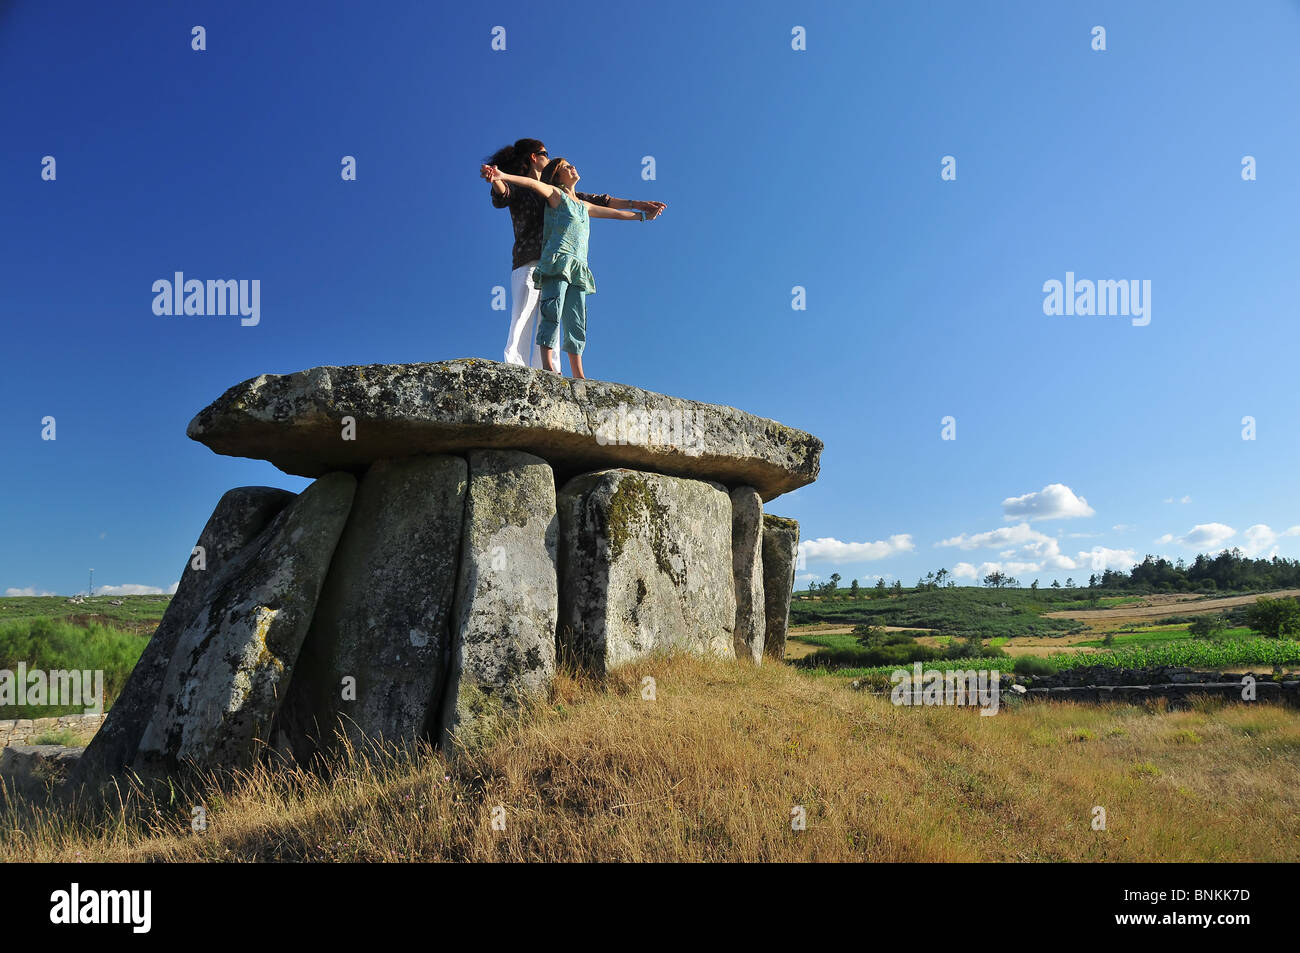 Dolmens neolithisch neolithic history story old antique stone bricklayer Portugal Europe granite megalith grave - Stock Image